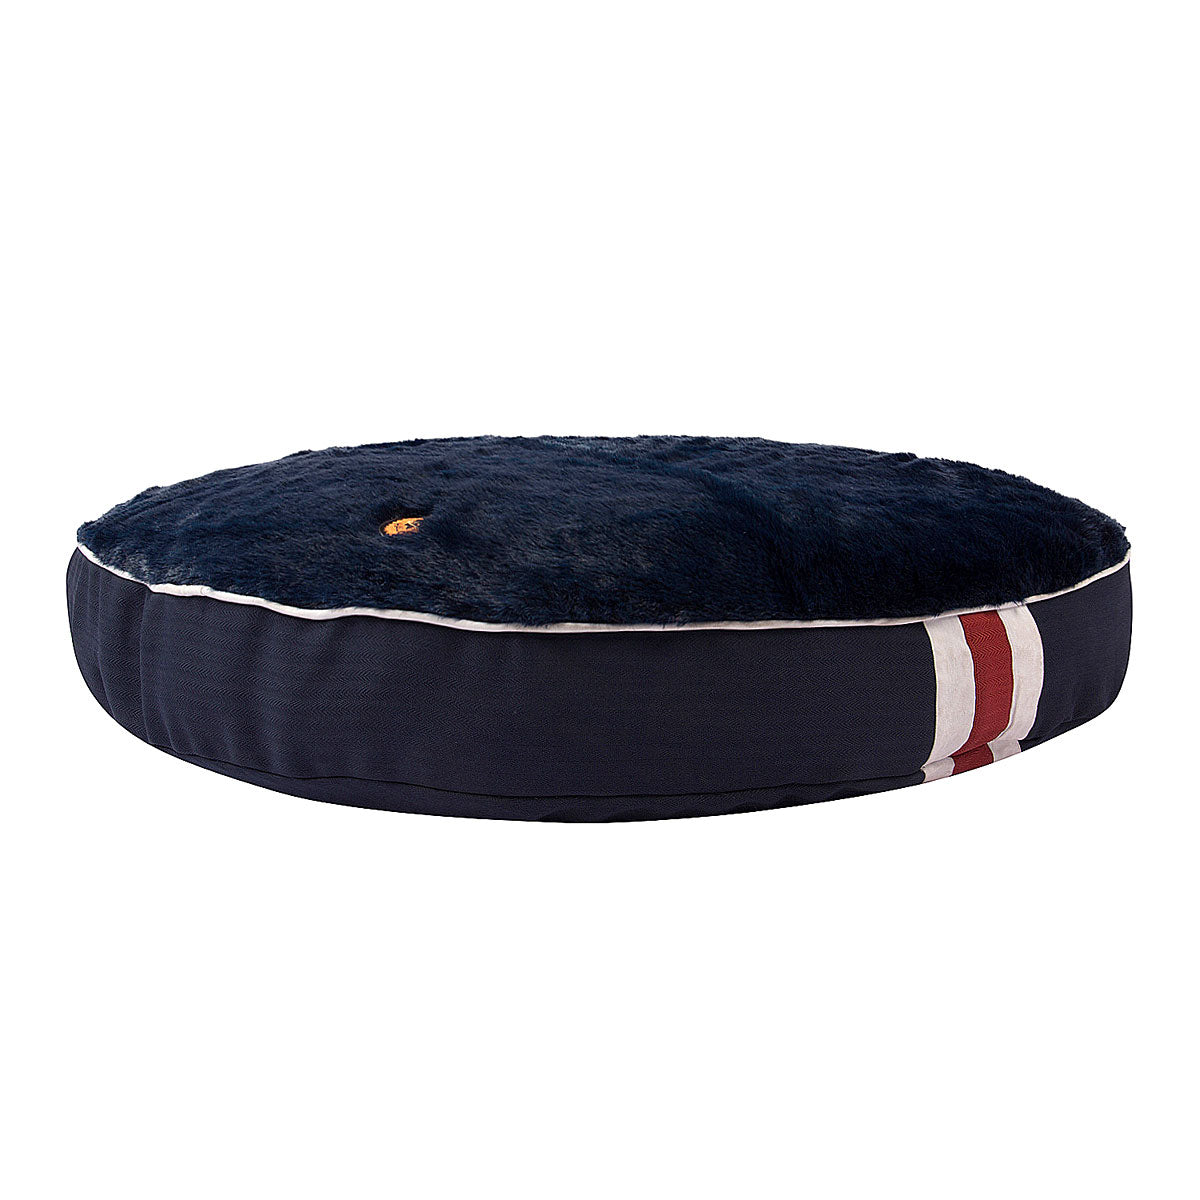 Halo Sam Round Dog Bed_1